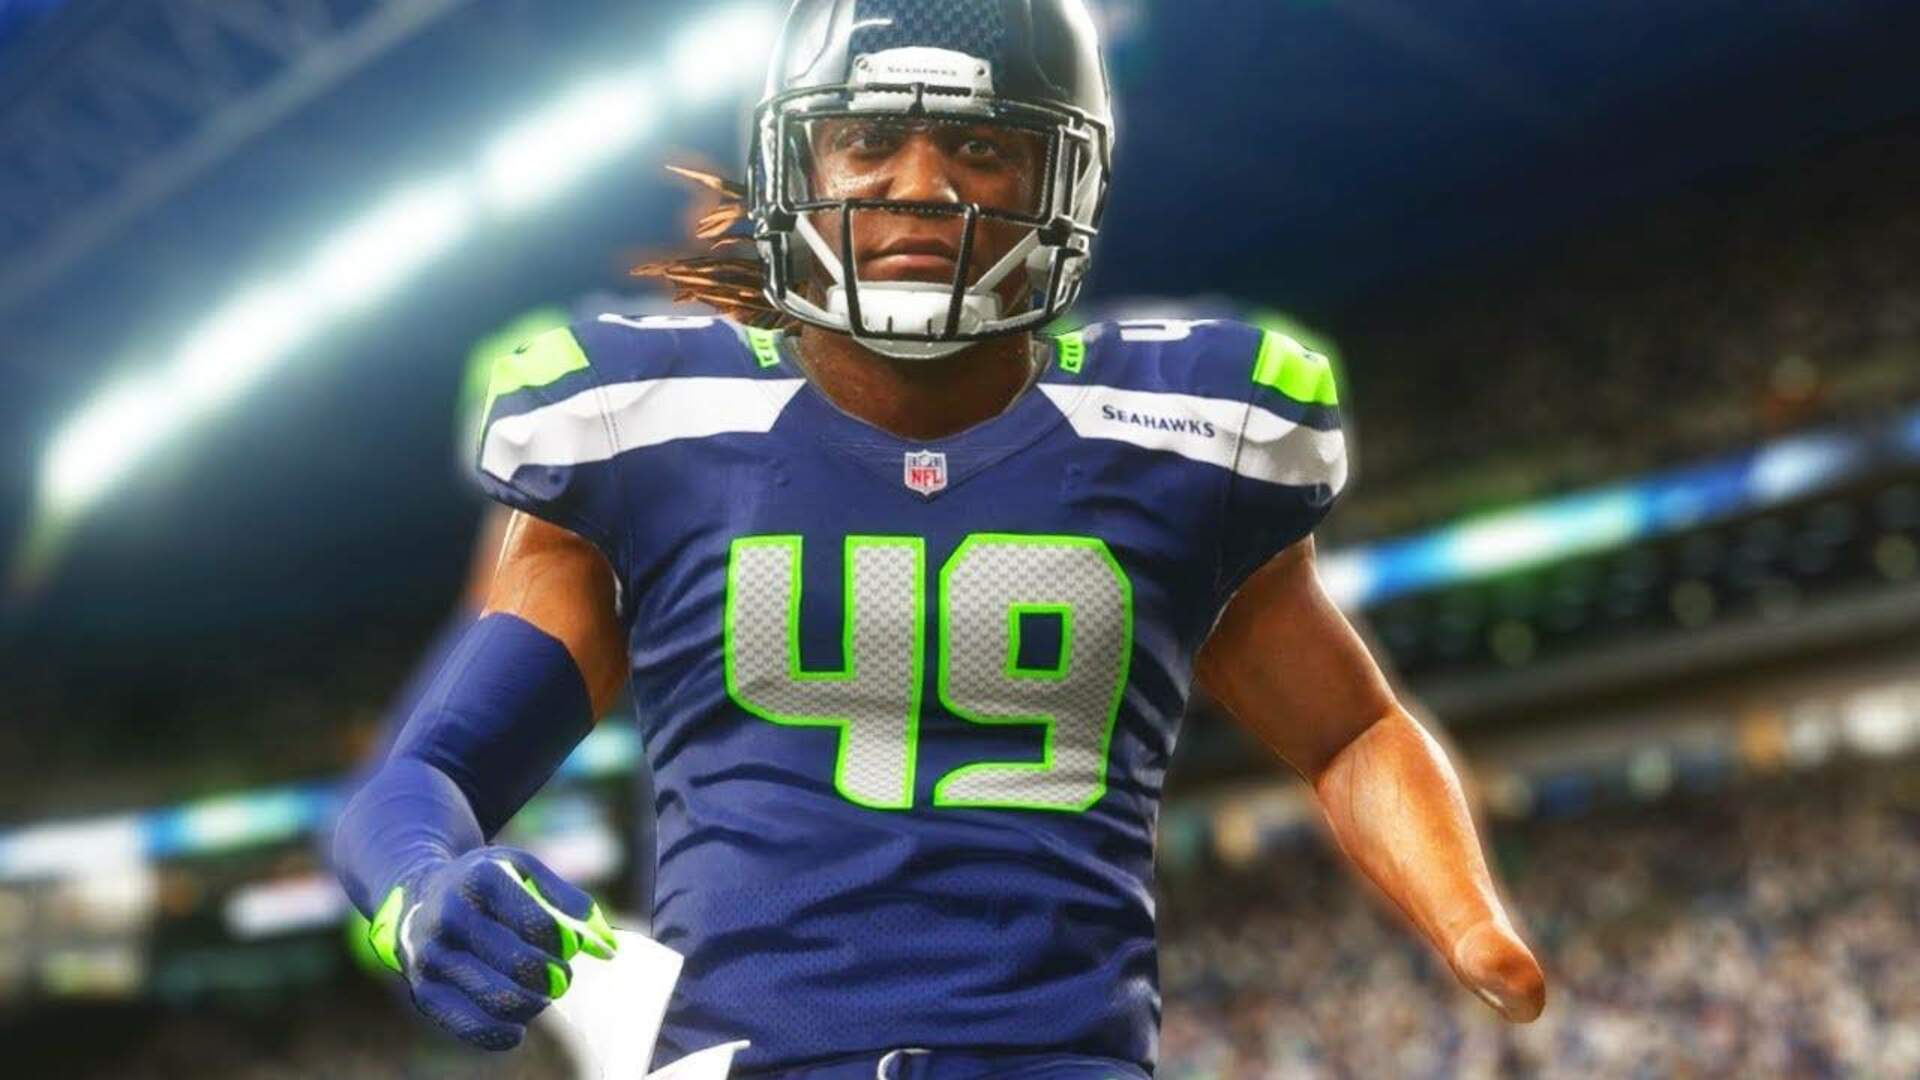 Madden 20's Shaquem Griffin Can Make Miraculous No-Handed Catches